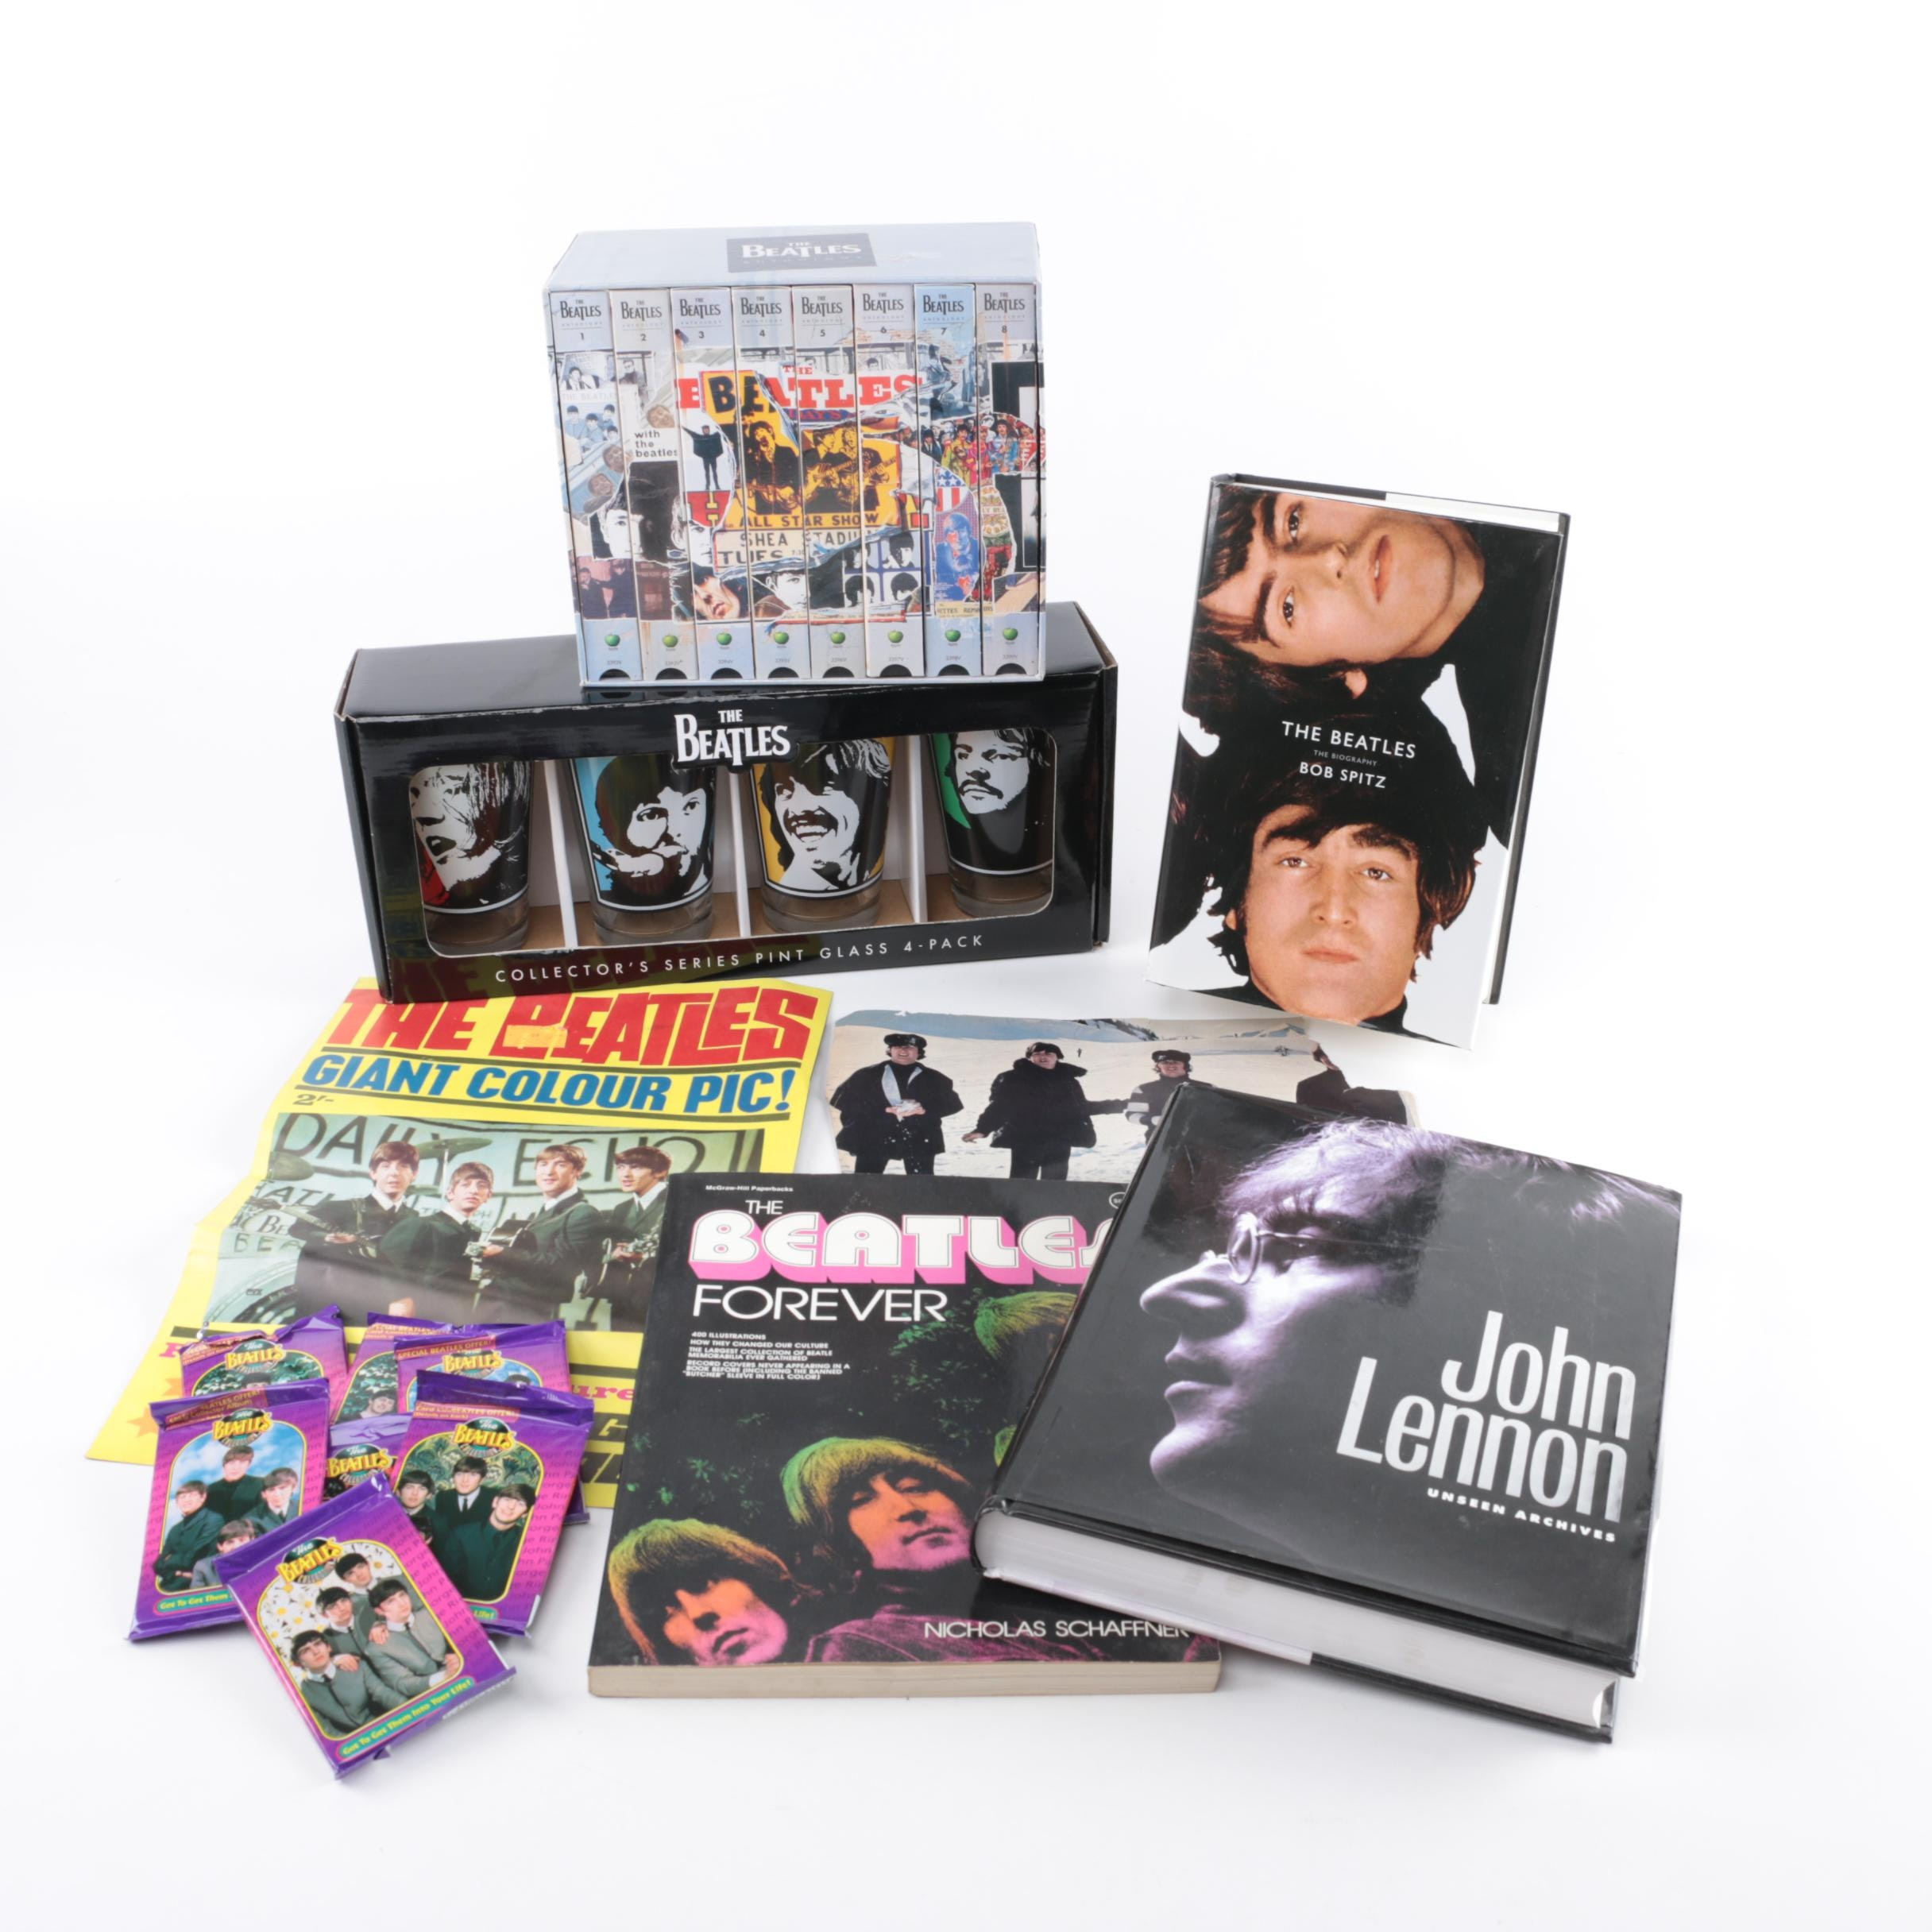 Beatles Memorabilia, Books and Video Cassettes